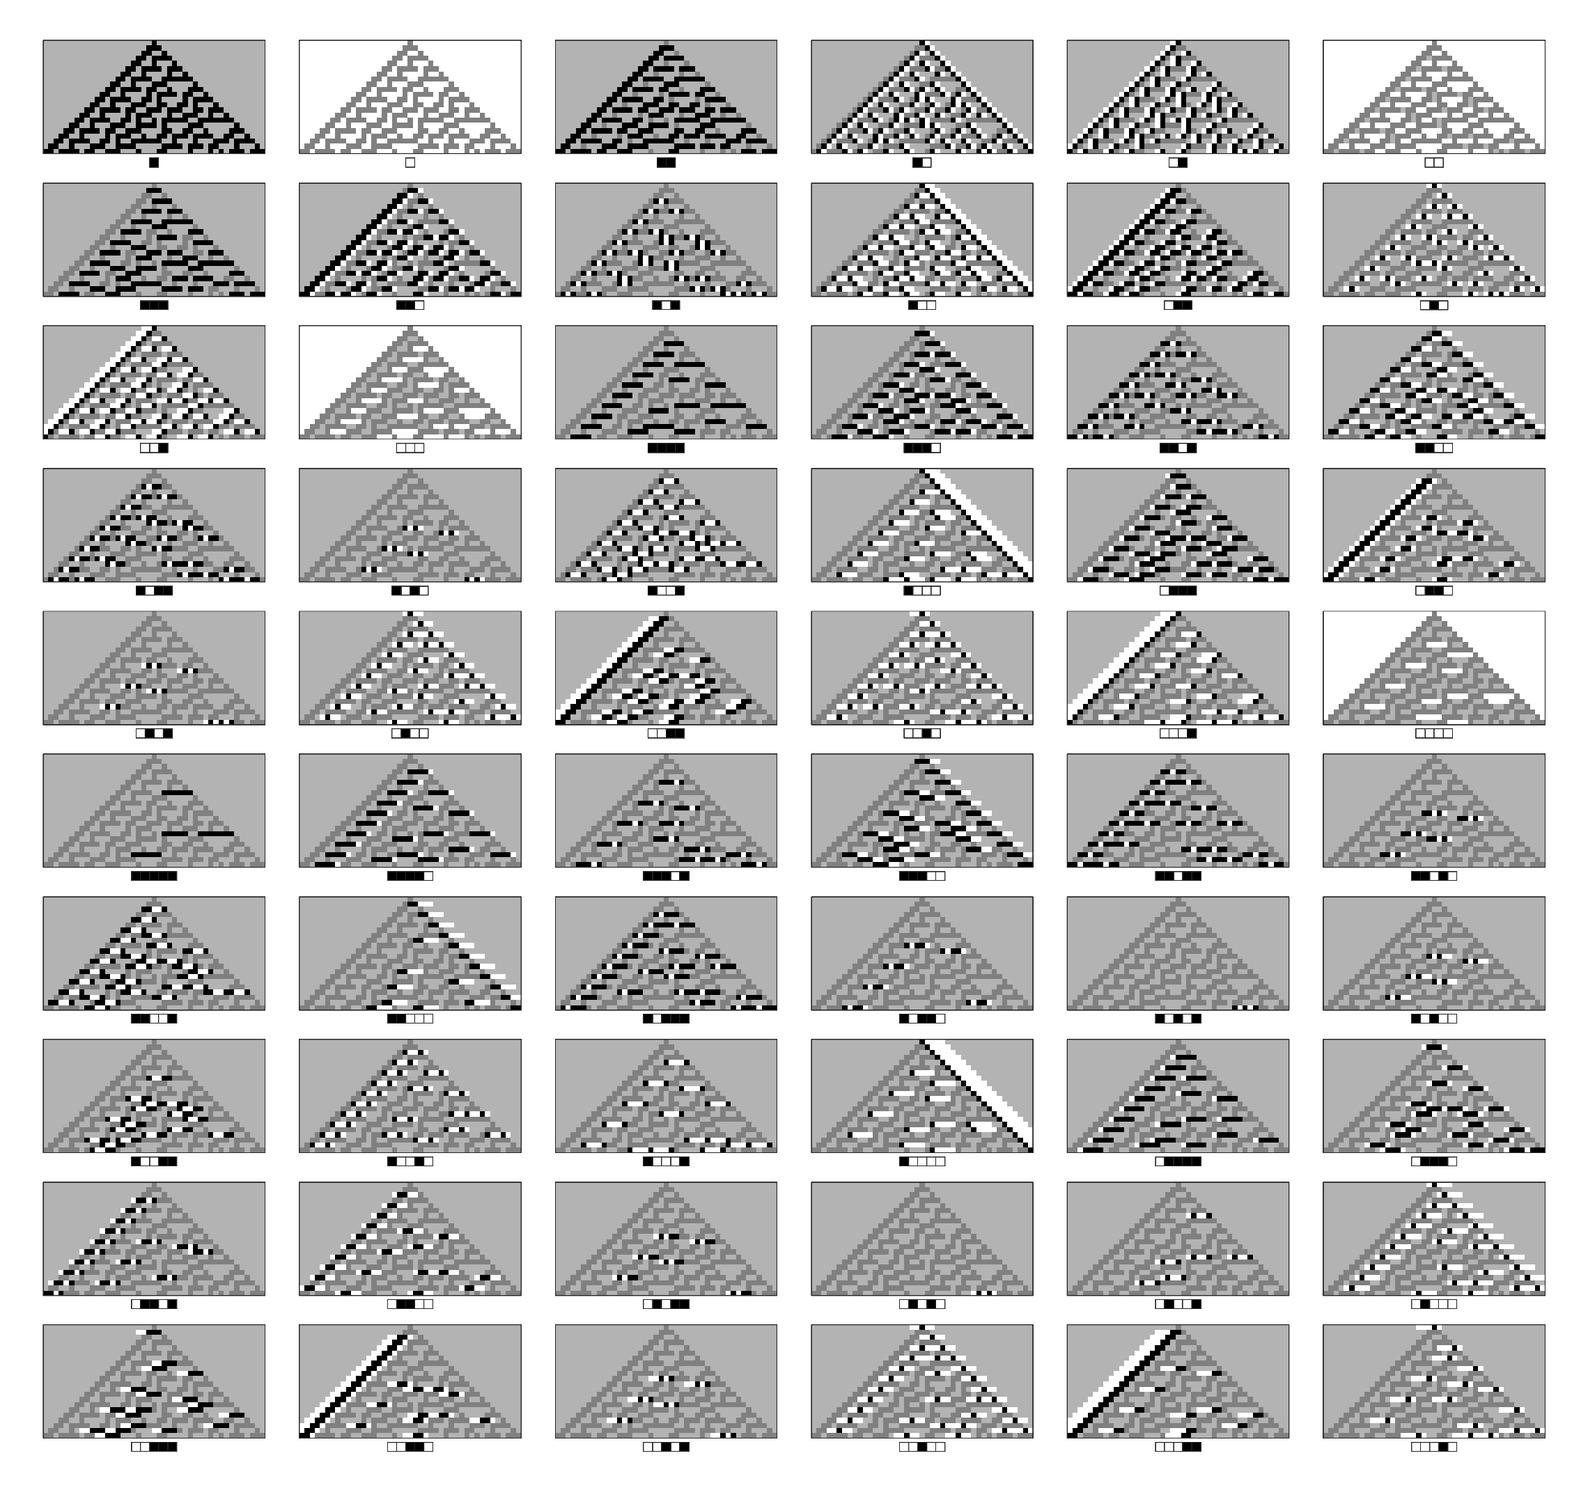 Occurrences of progressively longer blocks in the pattern generated by rule 30